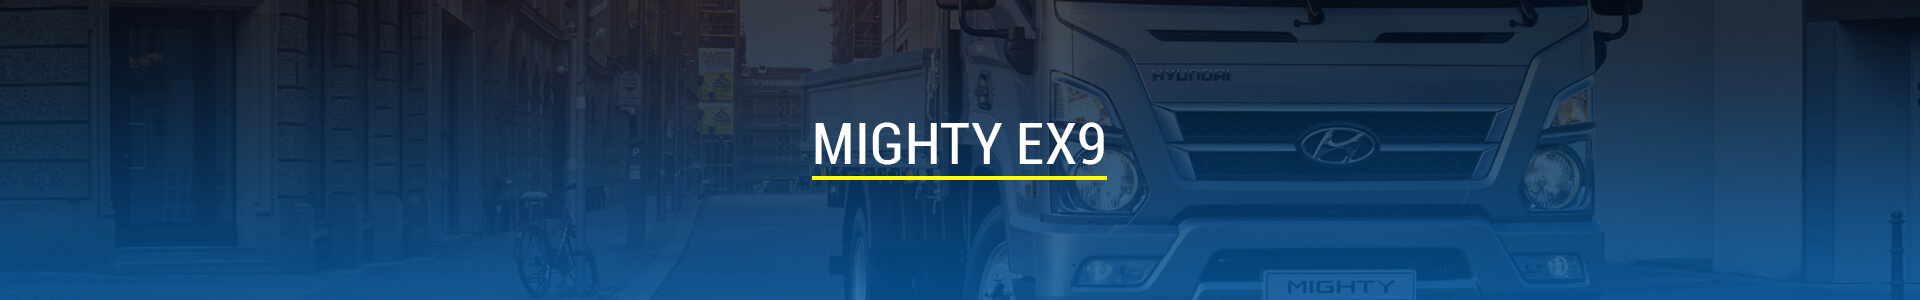 mighty ex9